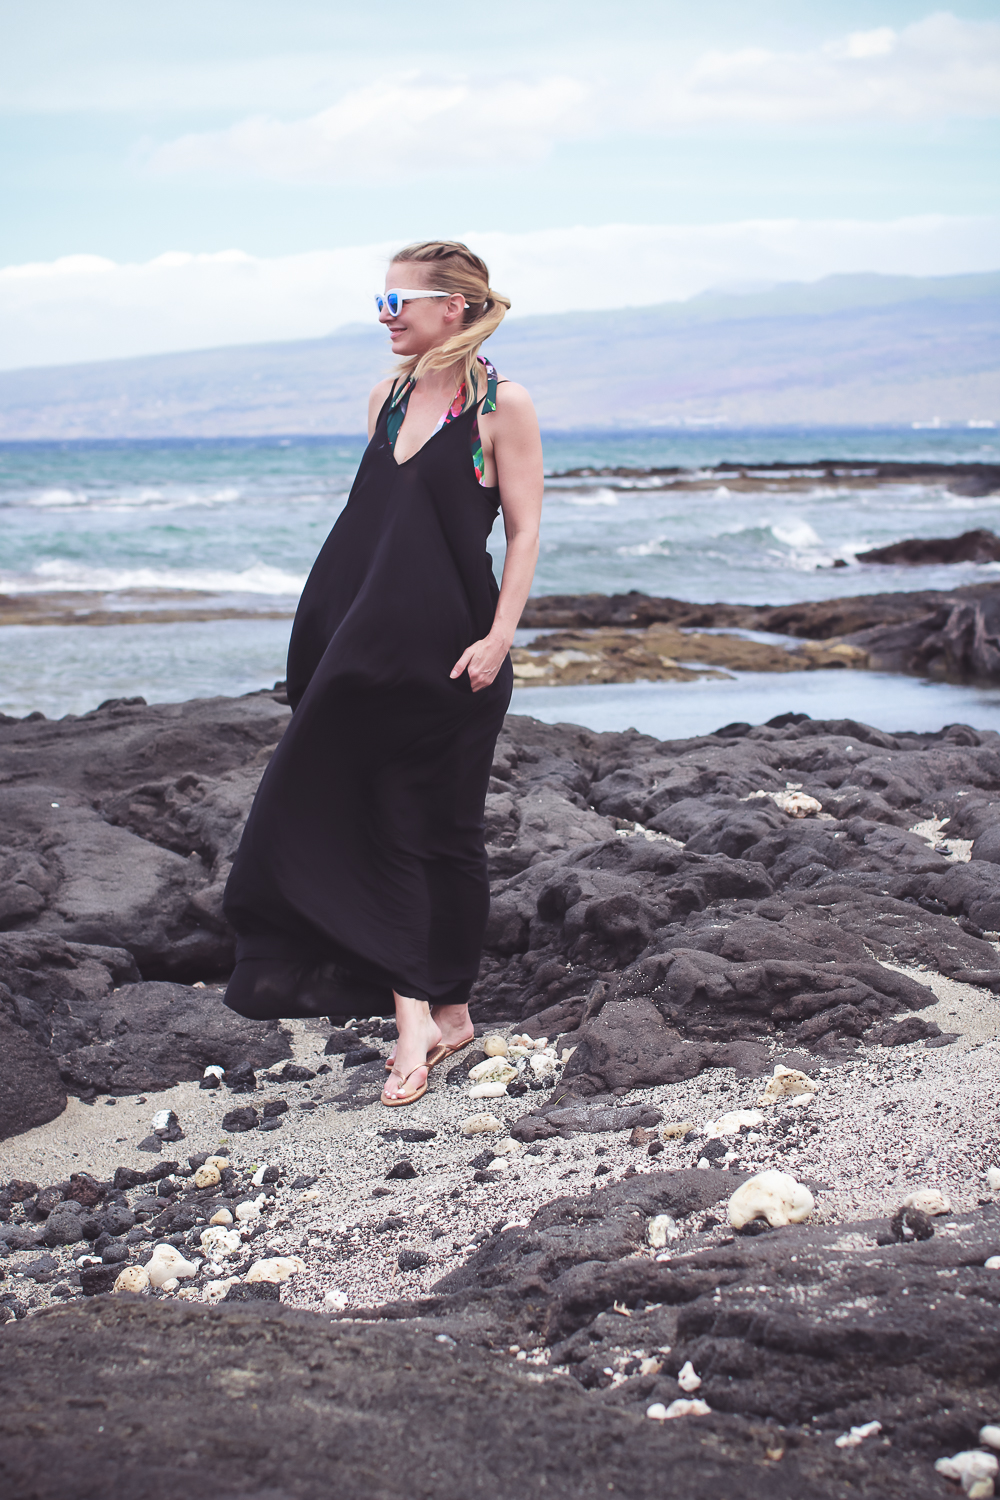 black Elan halter maxi dress swim coverup worn over bathing suit in tide pools on the beach